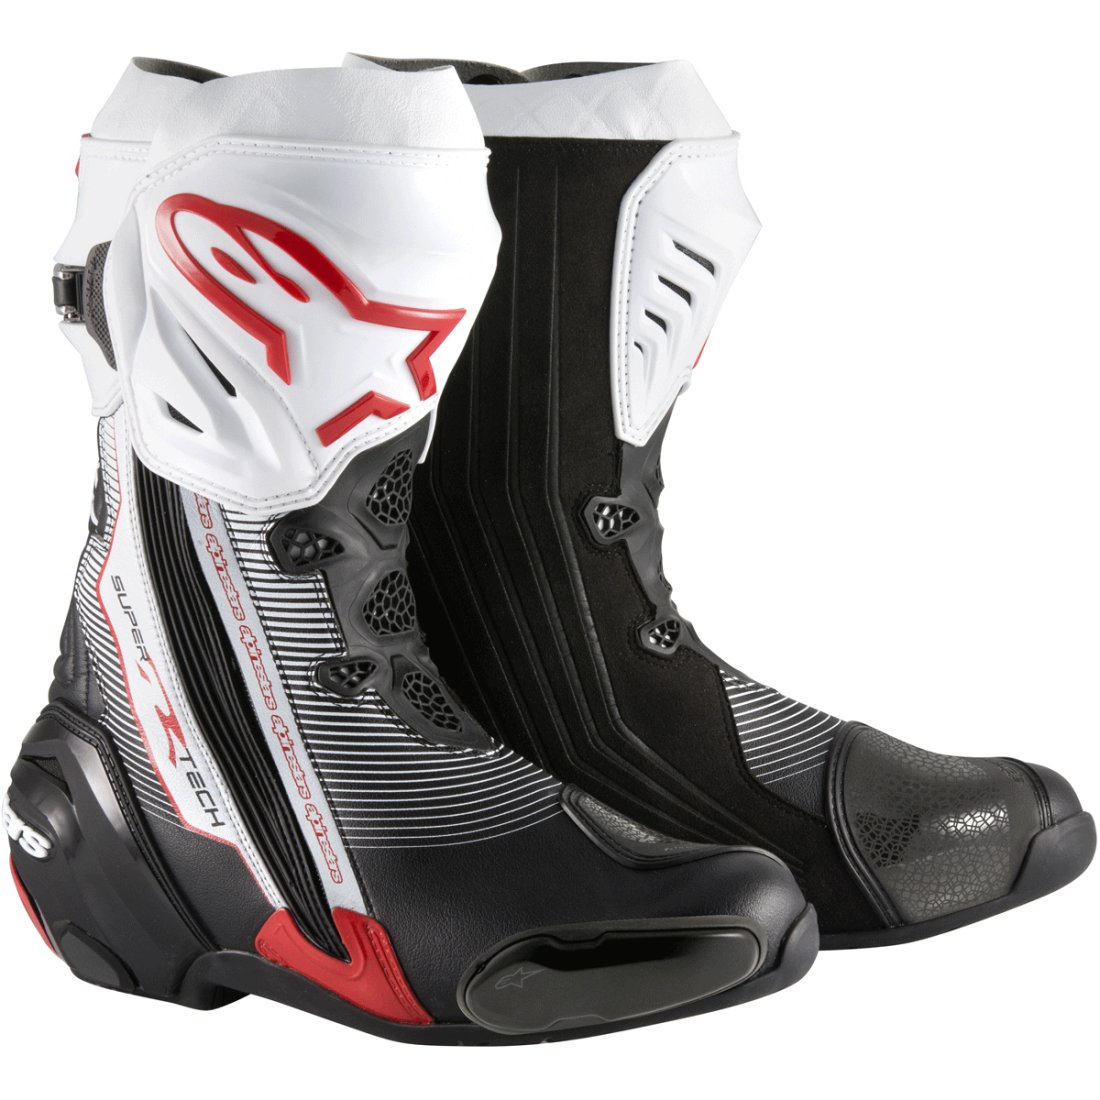 vente en magasin le plus en vogue hot-vente dernier Bottes ALPINESTARS Supertech-R Black / Red / White